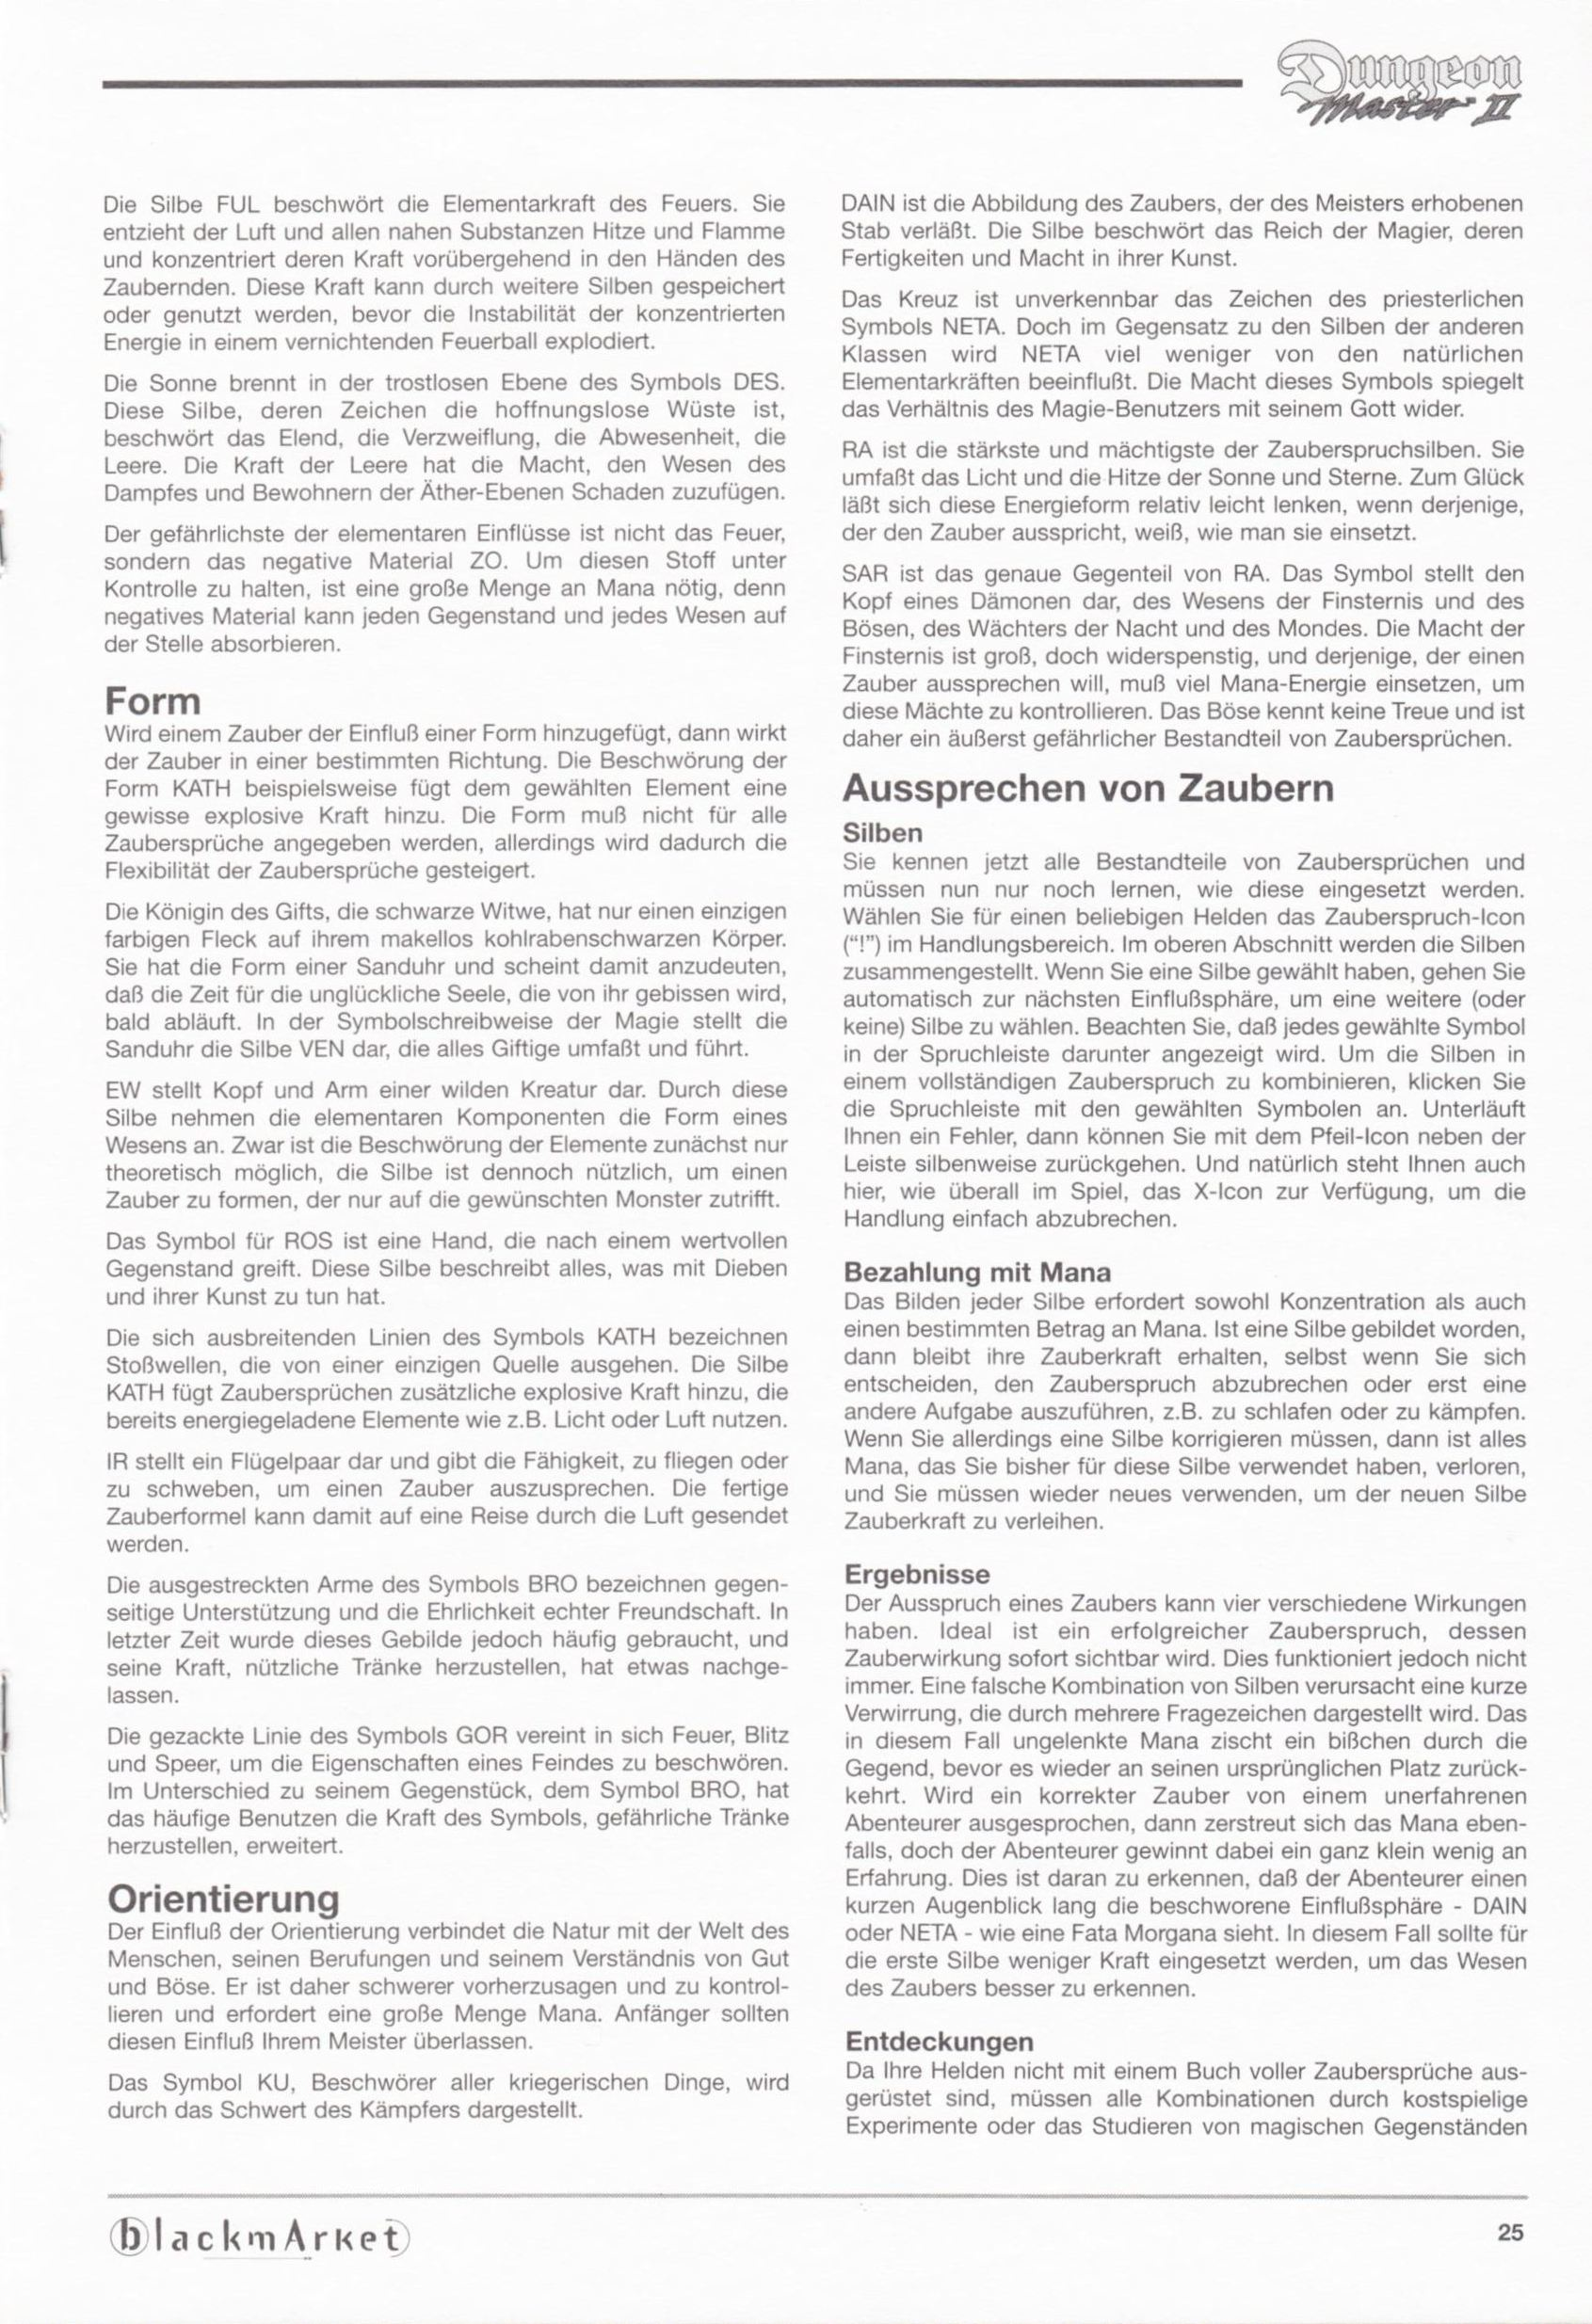 Game - Dungeon Master II - DE - PC - Blackmarket With Manual - Manual - Page 027 - Scan